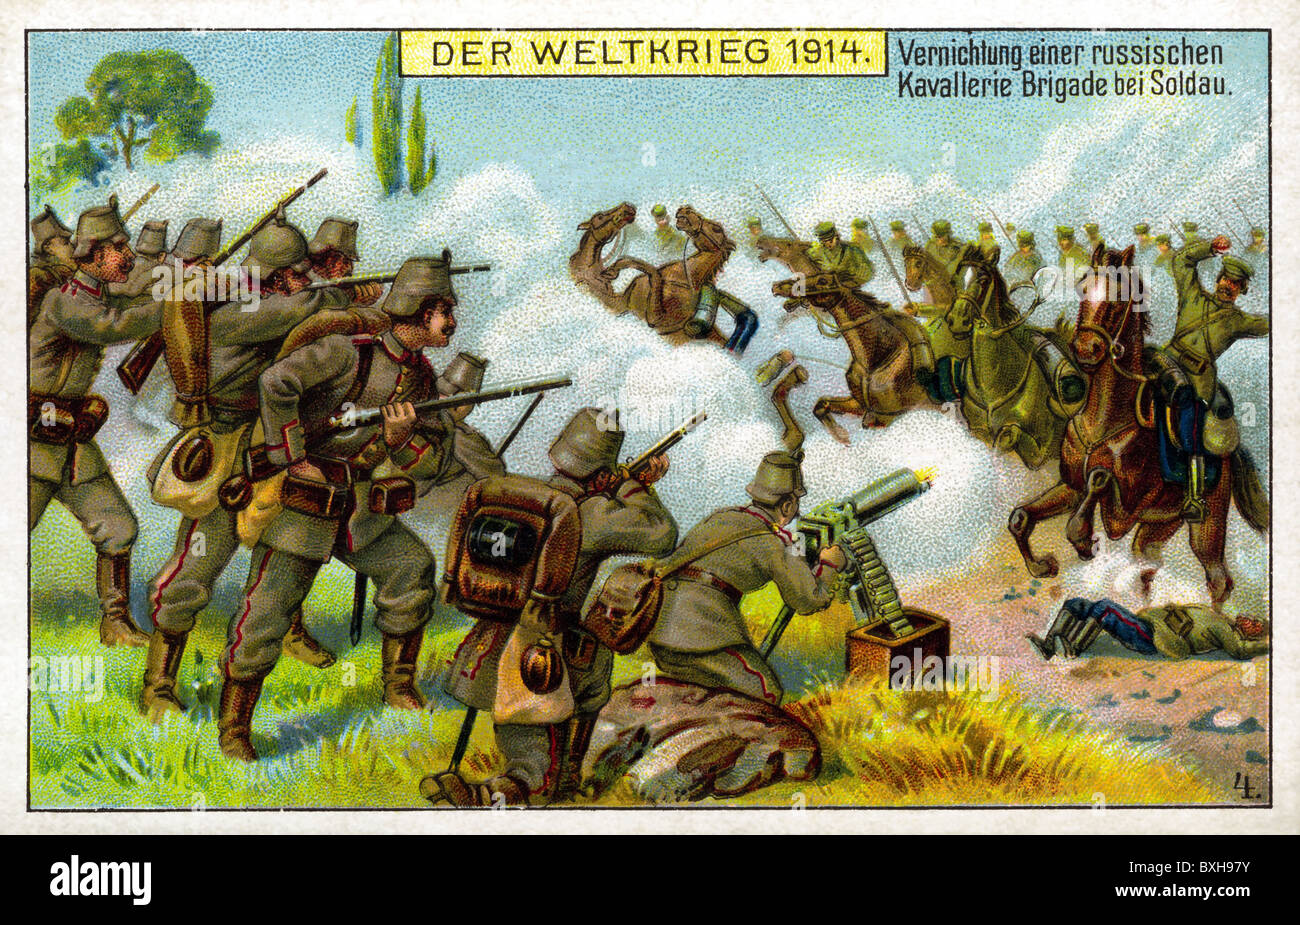 world war / WW I, German soldiers shooting at Russian cavalry, 1914, Additional-Rights-Clearences-NA - Stock Image